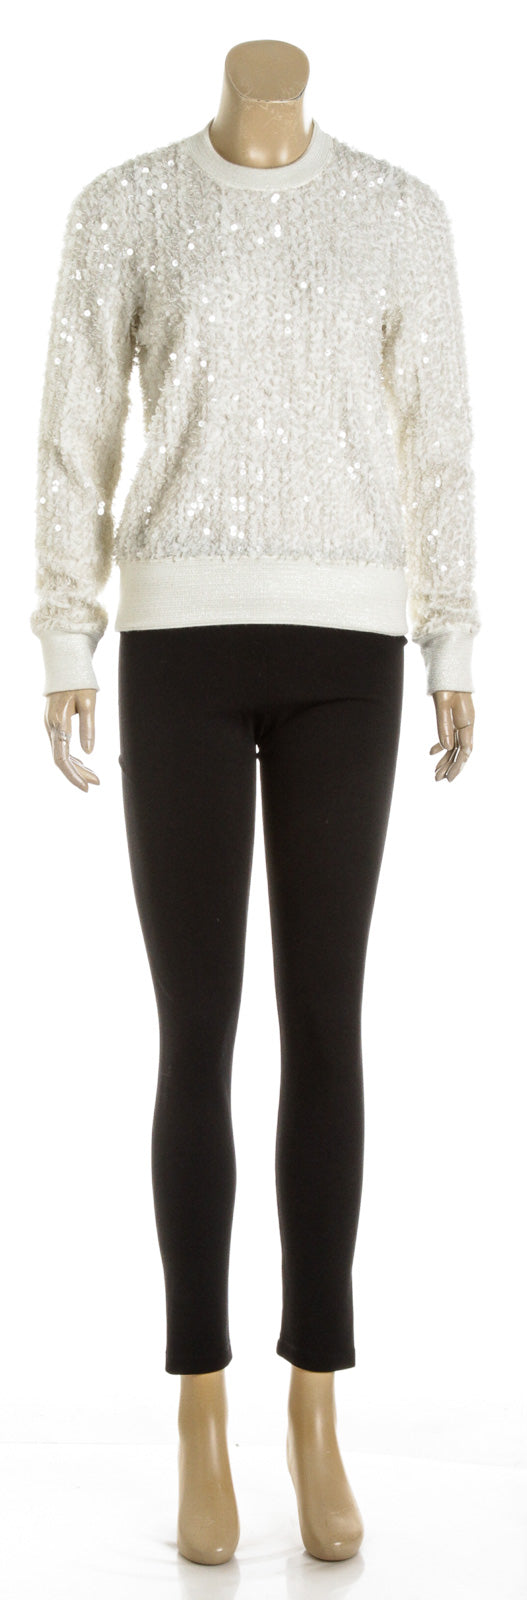 Chanel Cream Angora Long Sleeve Sequinned Knit Top (Size 36)